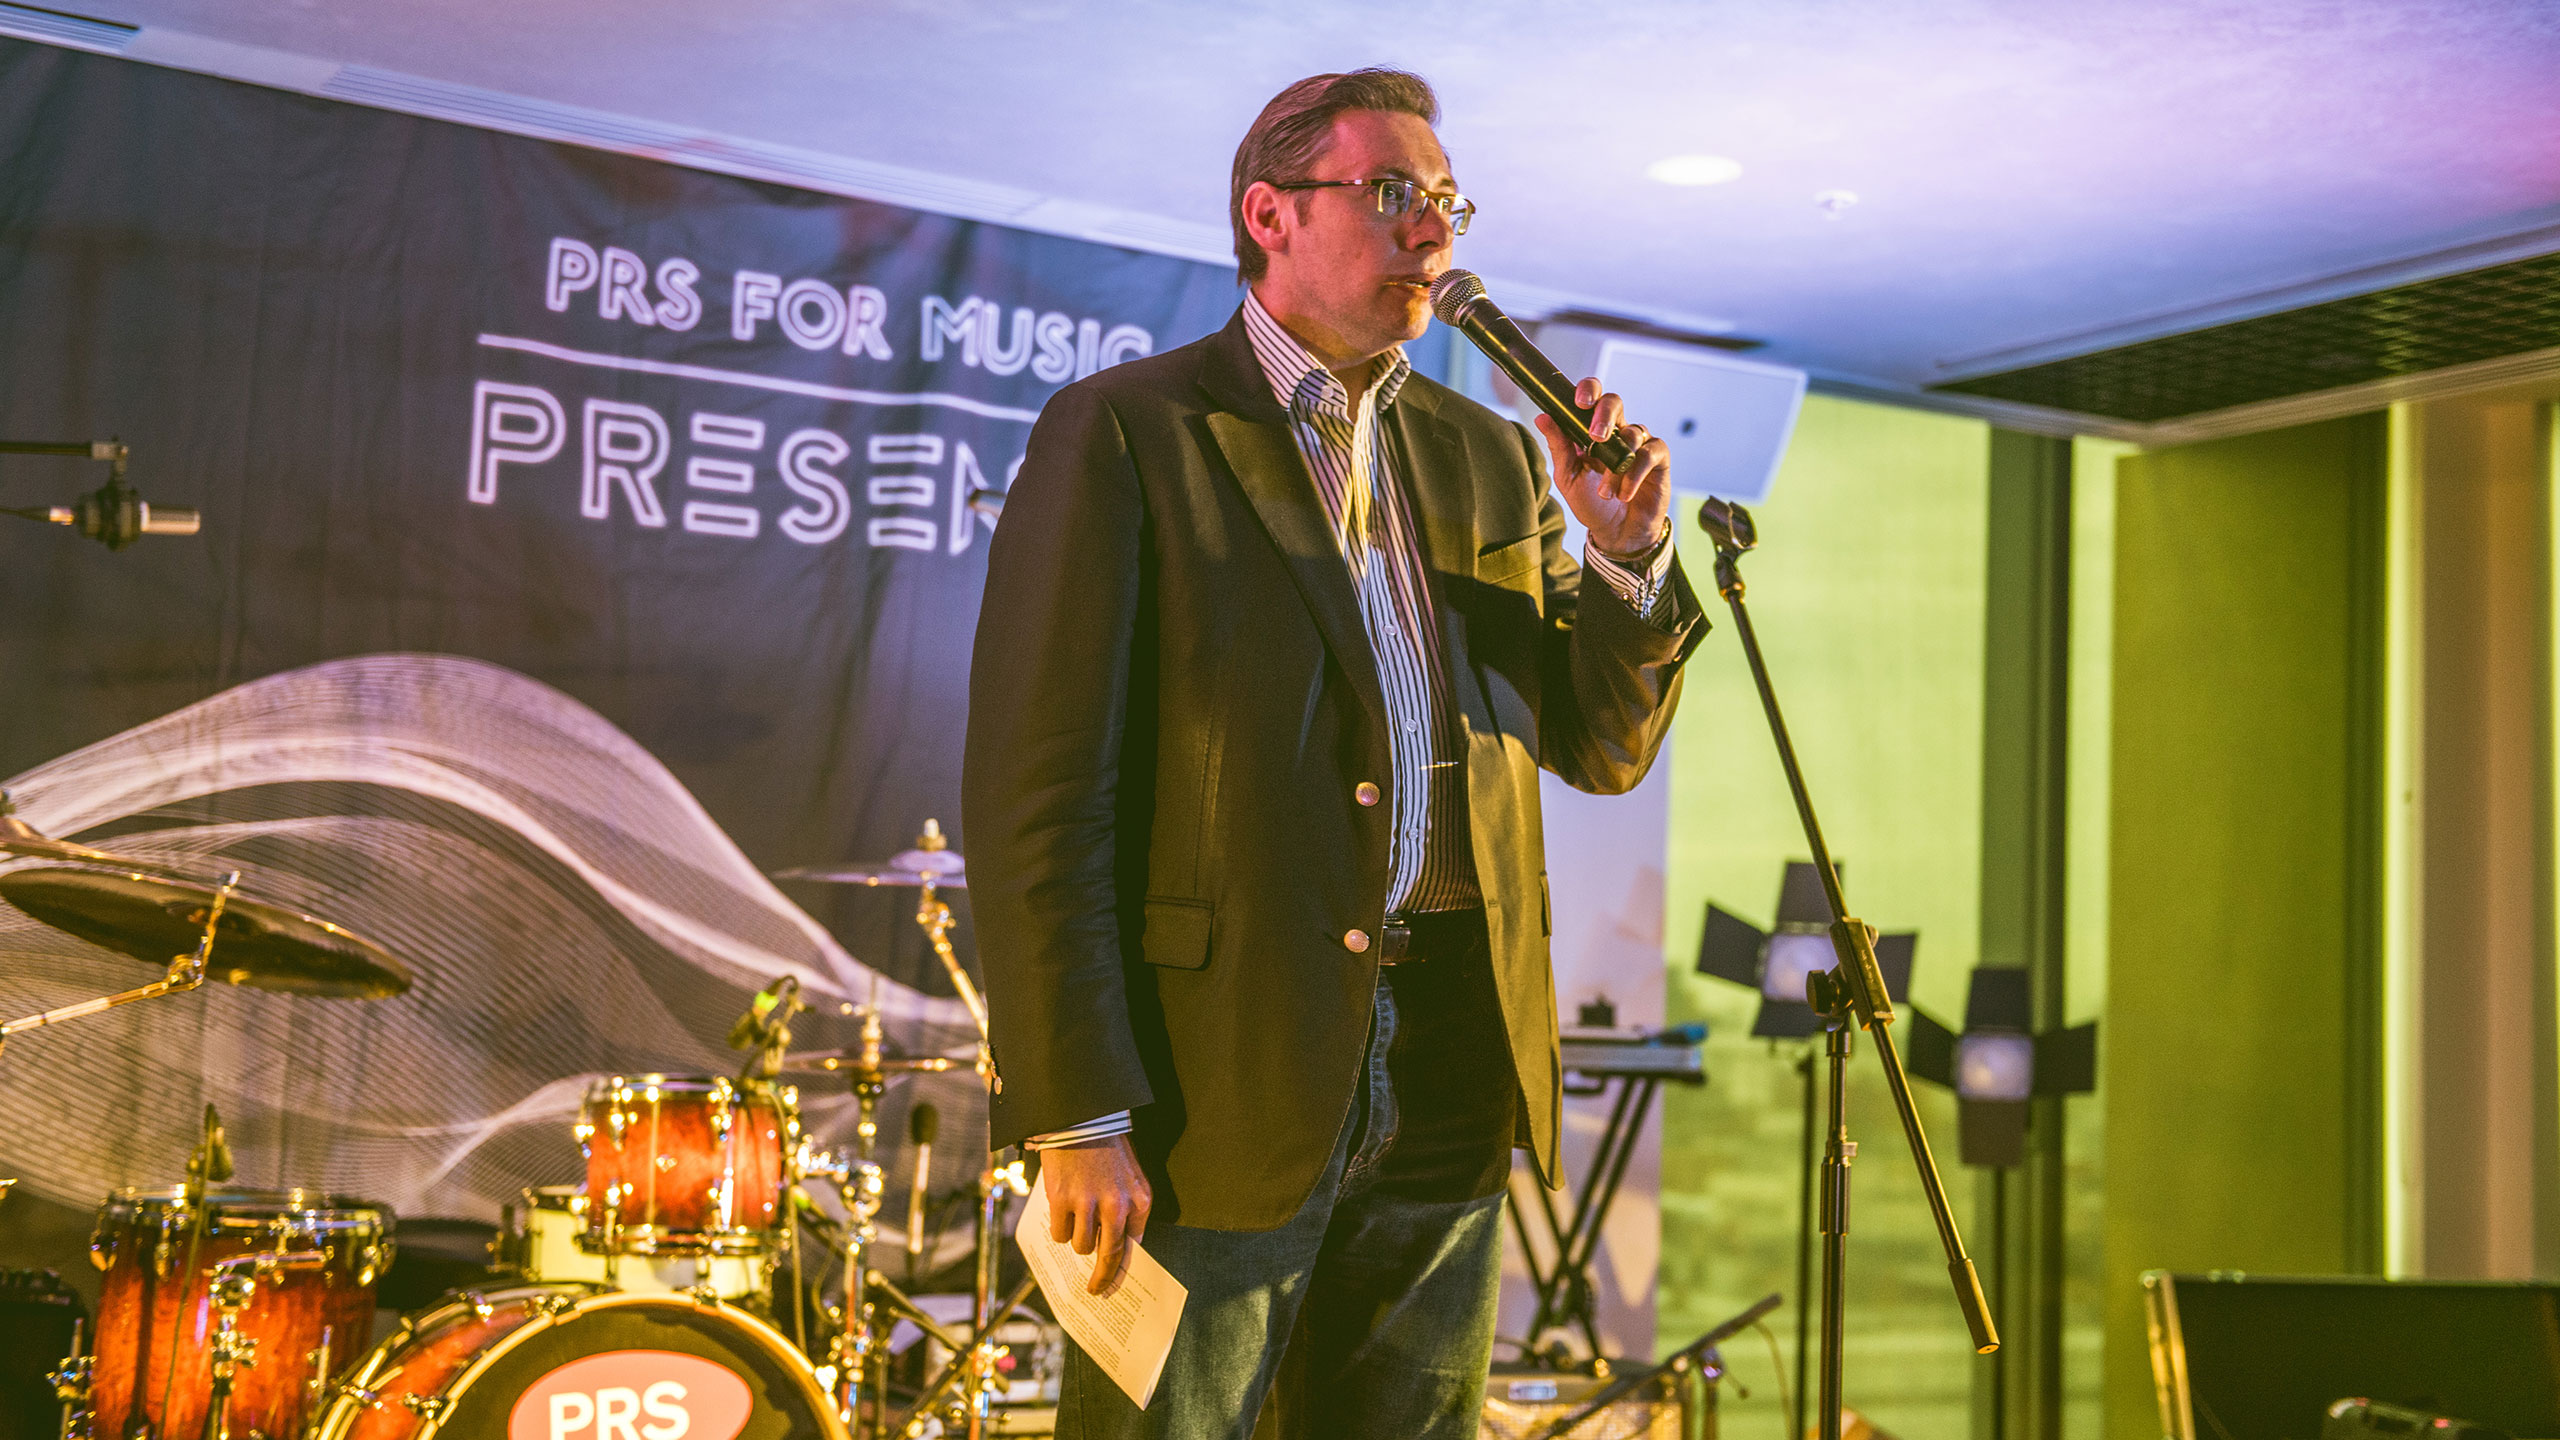 Paul Clements introduces the performers at a PRS Presents gig